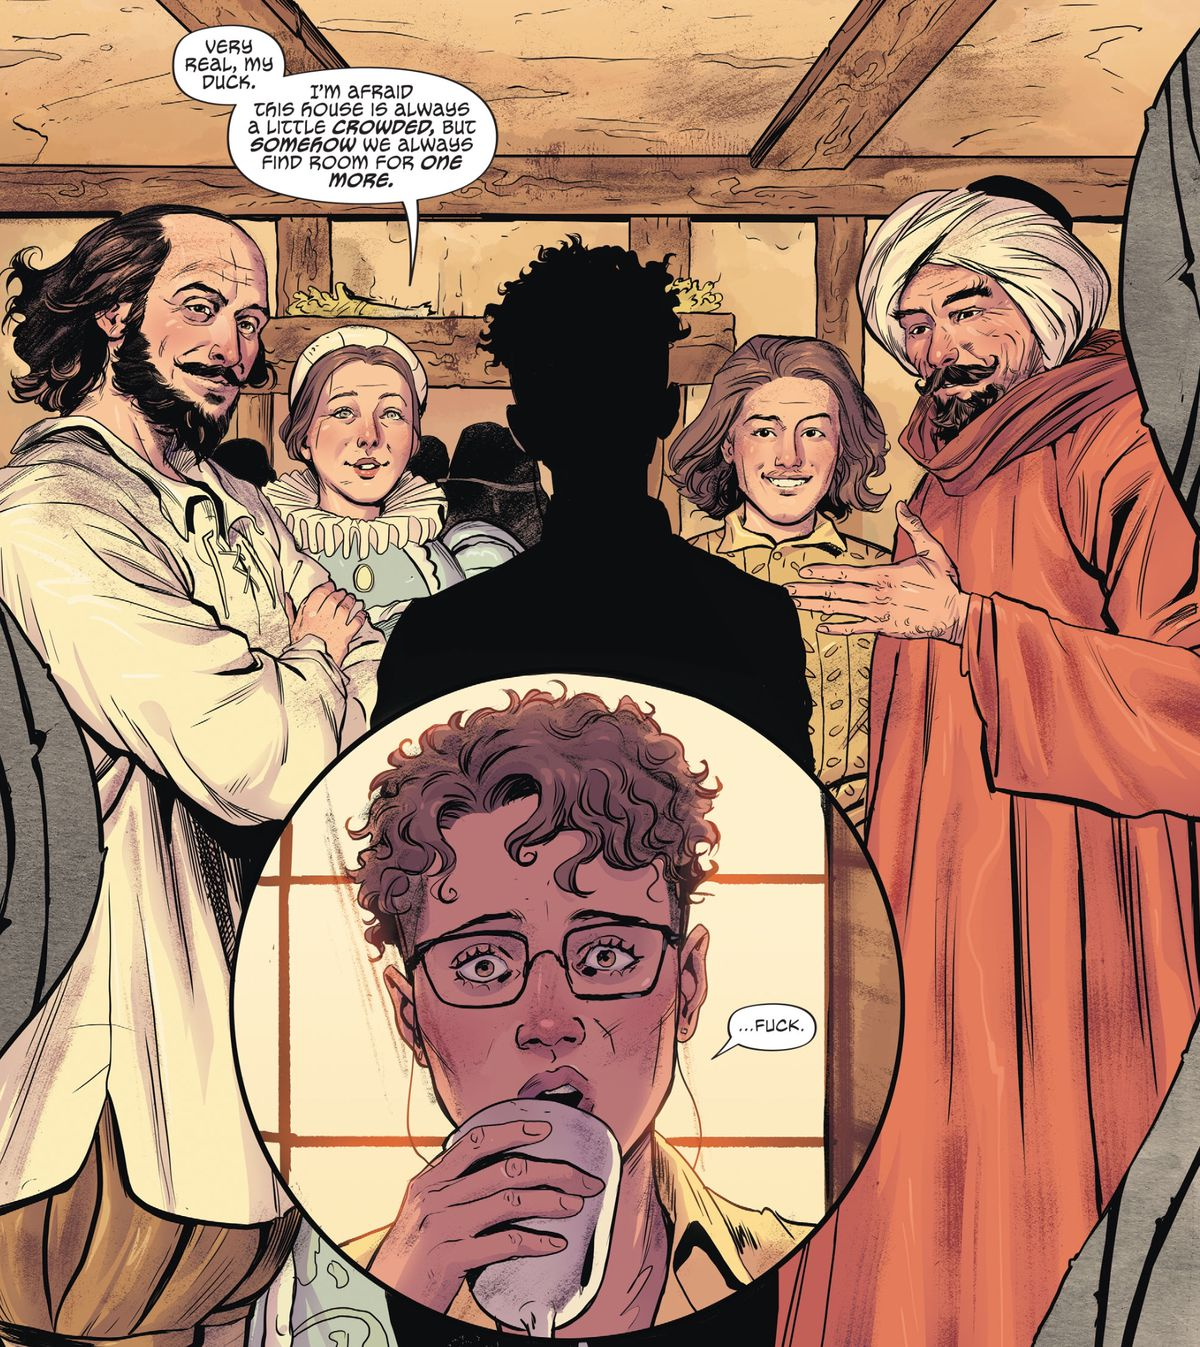 Lindy comes face to face with William Shakespeare, Anne Hathaway, Kit Marlowe, and Shaykh Zubayr bin William in a dream in The Dreaming: Waking Hours, DC Comics (2020).